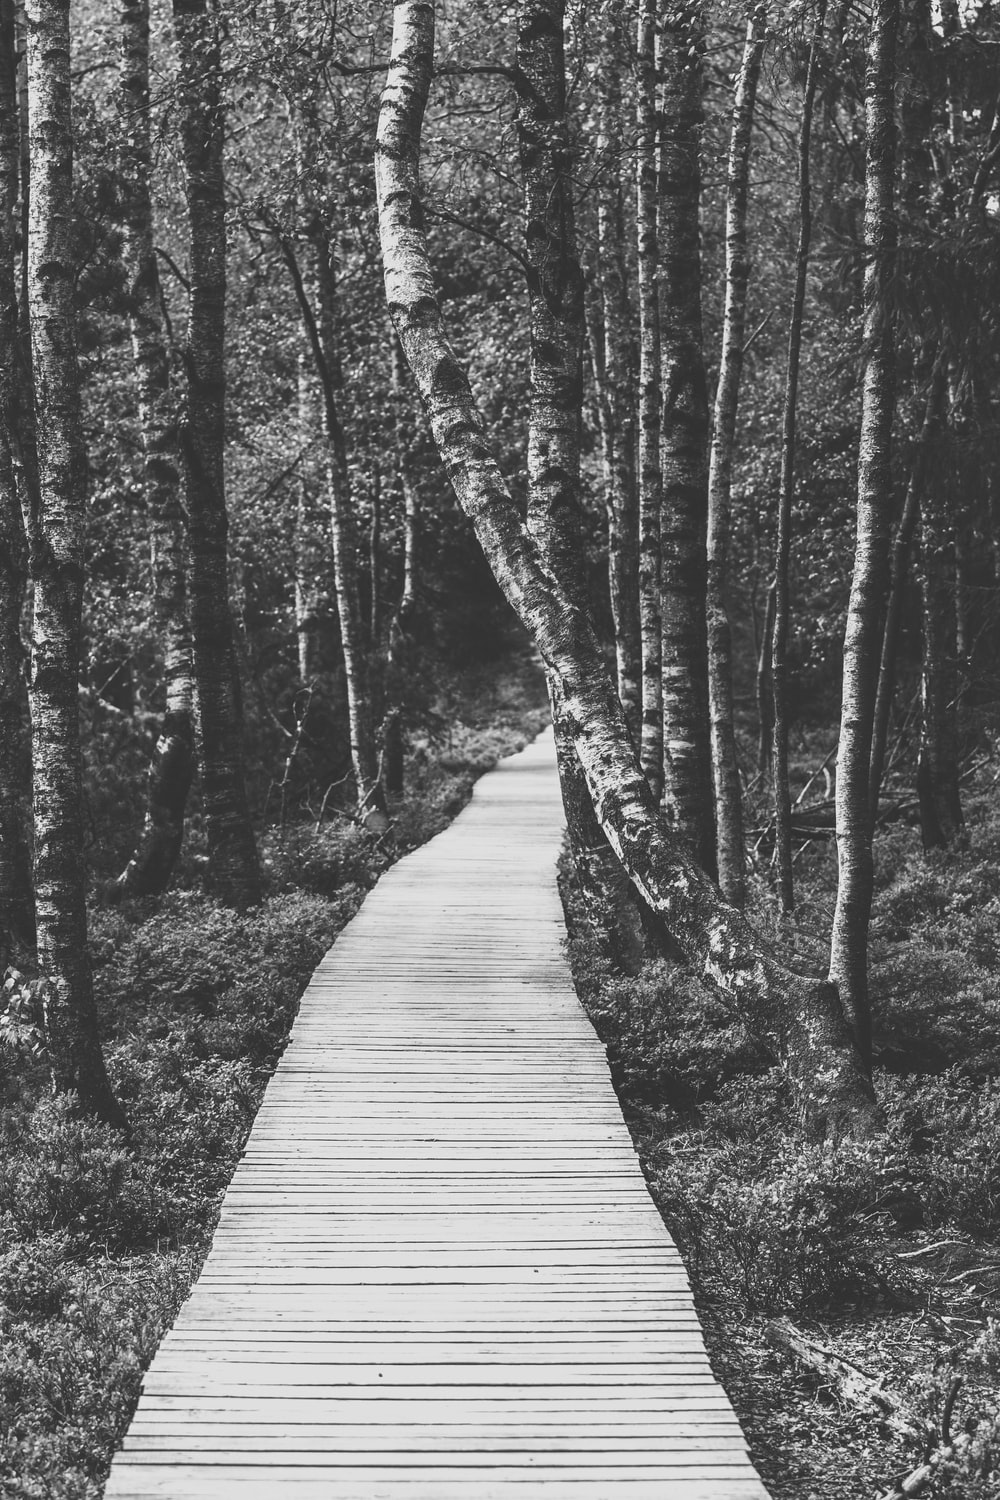 greyscale photo of pathway with trees